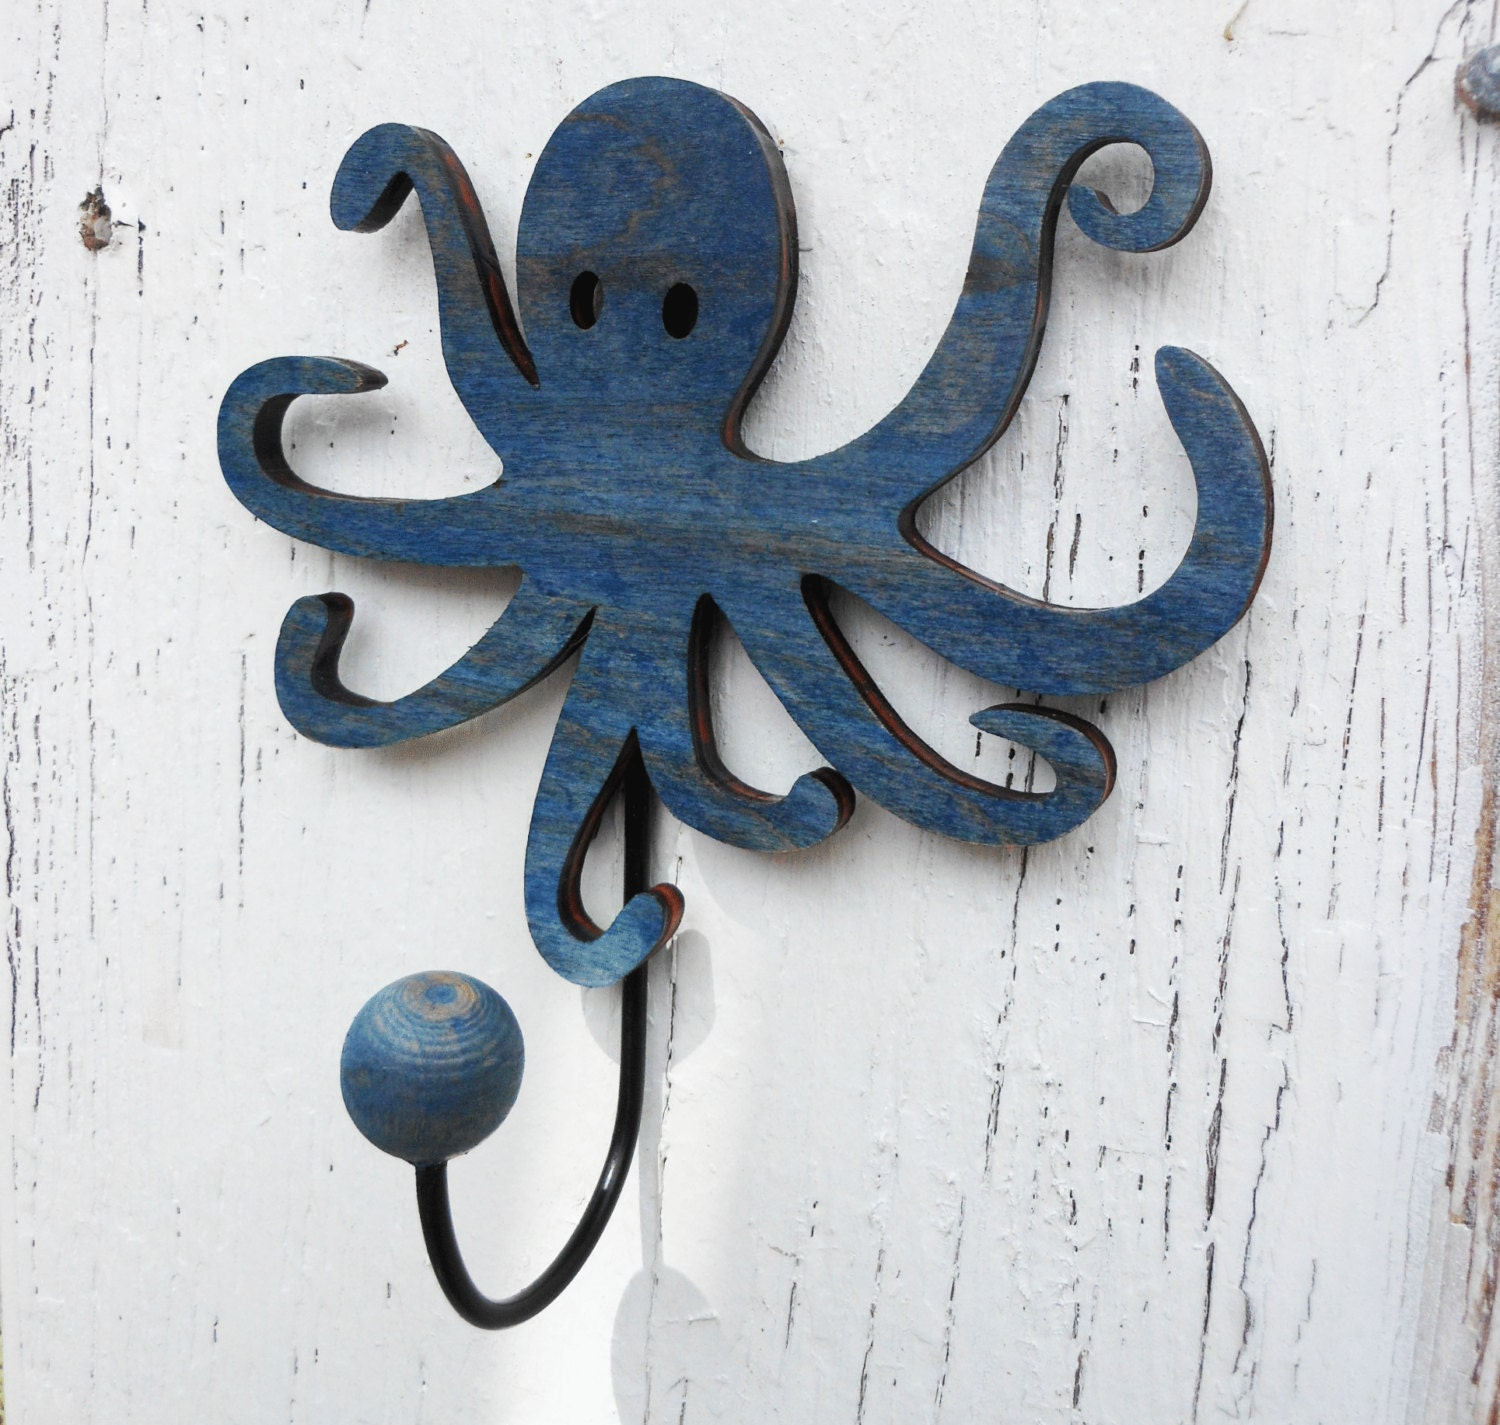 Chandeliers pendant lights - Octopus towel hooks ...